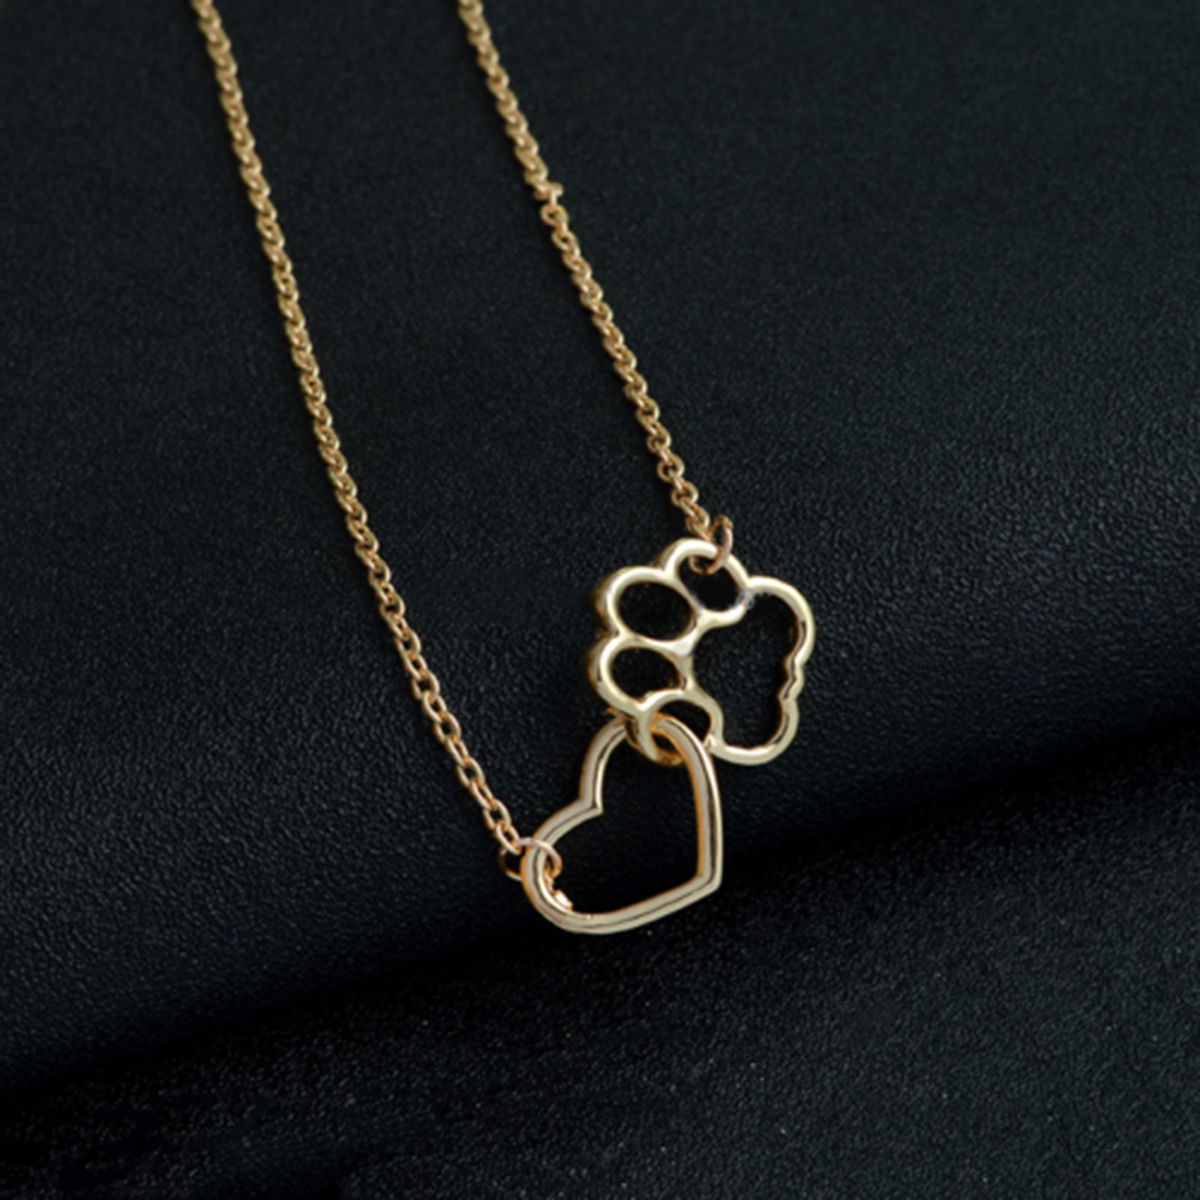 SALE HOLLOW PET PAW FOOTPRINT NECKLACES FOR CAT LOVERS-Cat Jewelry-Free Shipping SALE HOLLOW PET PAW FOOTPRINT NECKLACES FOR CAT LOVERS-Cat Jewelry-Free Shipping HTB1fiksRpXXXXauXpXXq6xXFXXXO